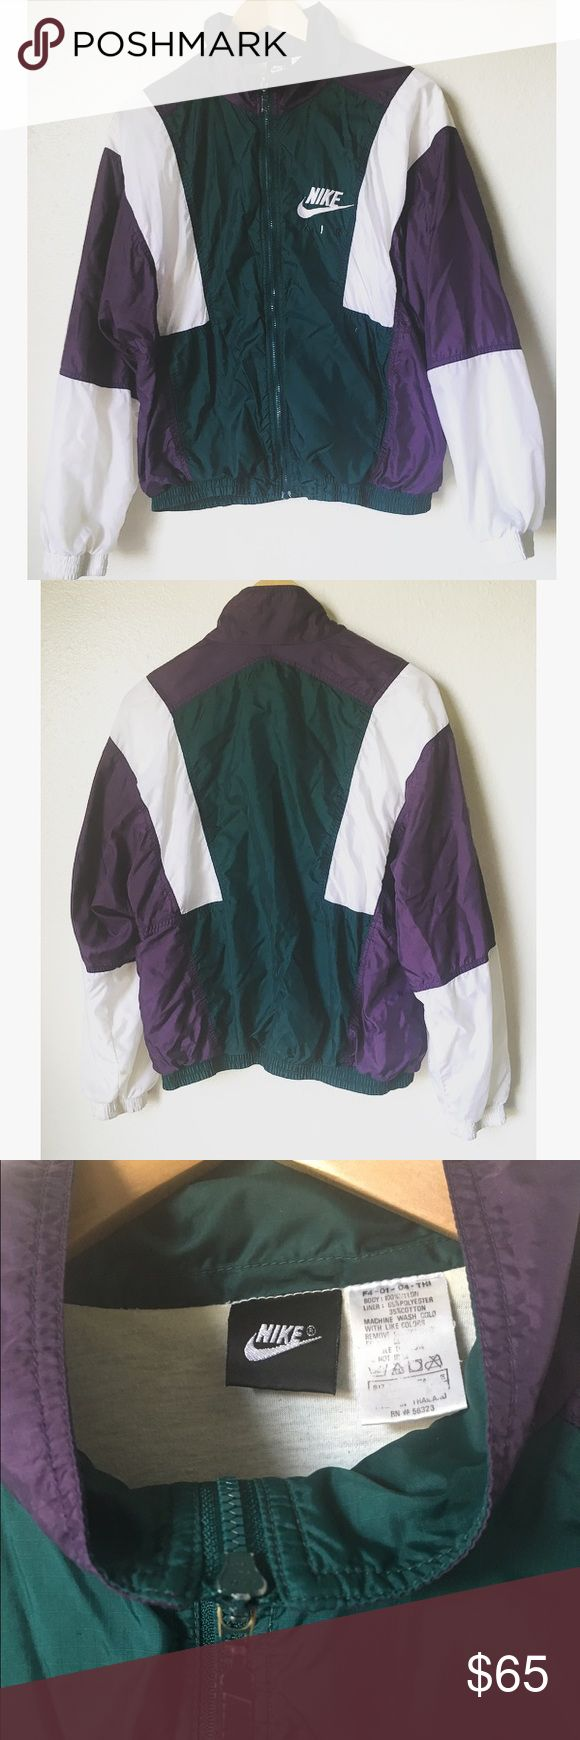 Vintage Nike Zip Up Windbreaker Vintage Nike wind jacket zip up. Colorful and retro! Fits like a medium. Note this is a vintage item and there is some discoloration on the inner and bottoms of the white sleeves. 90s/80s colorblock style. Green white and purple... it's amazing! Vintage Jackets & Coats